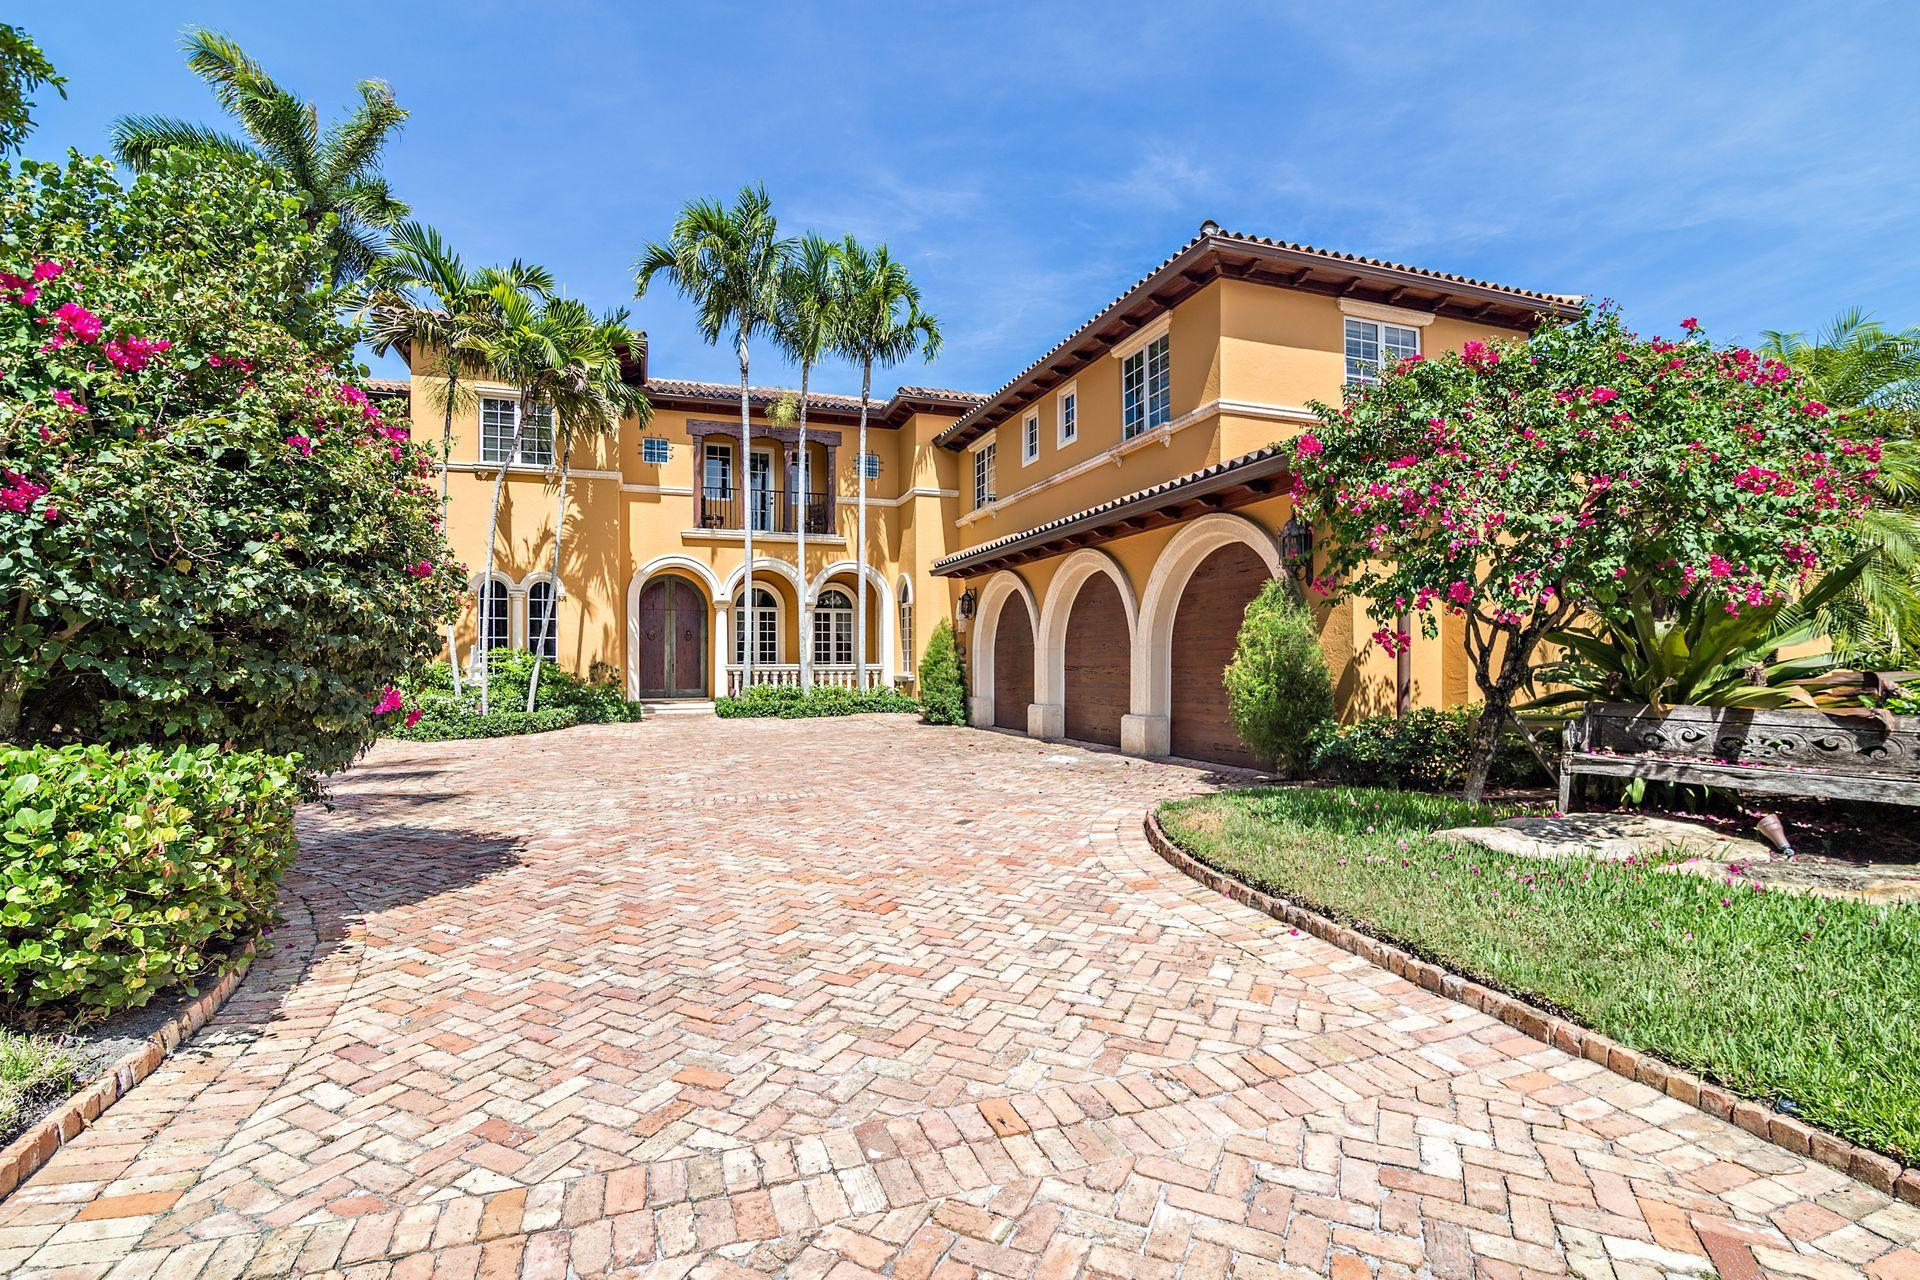 New Home for sale at 3180 Washington Road in West Palm Beach